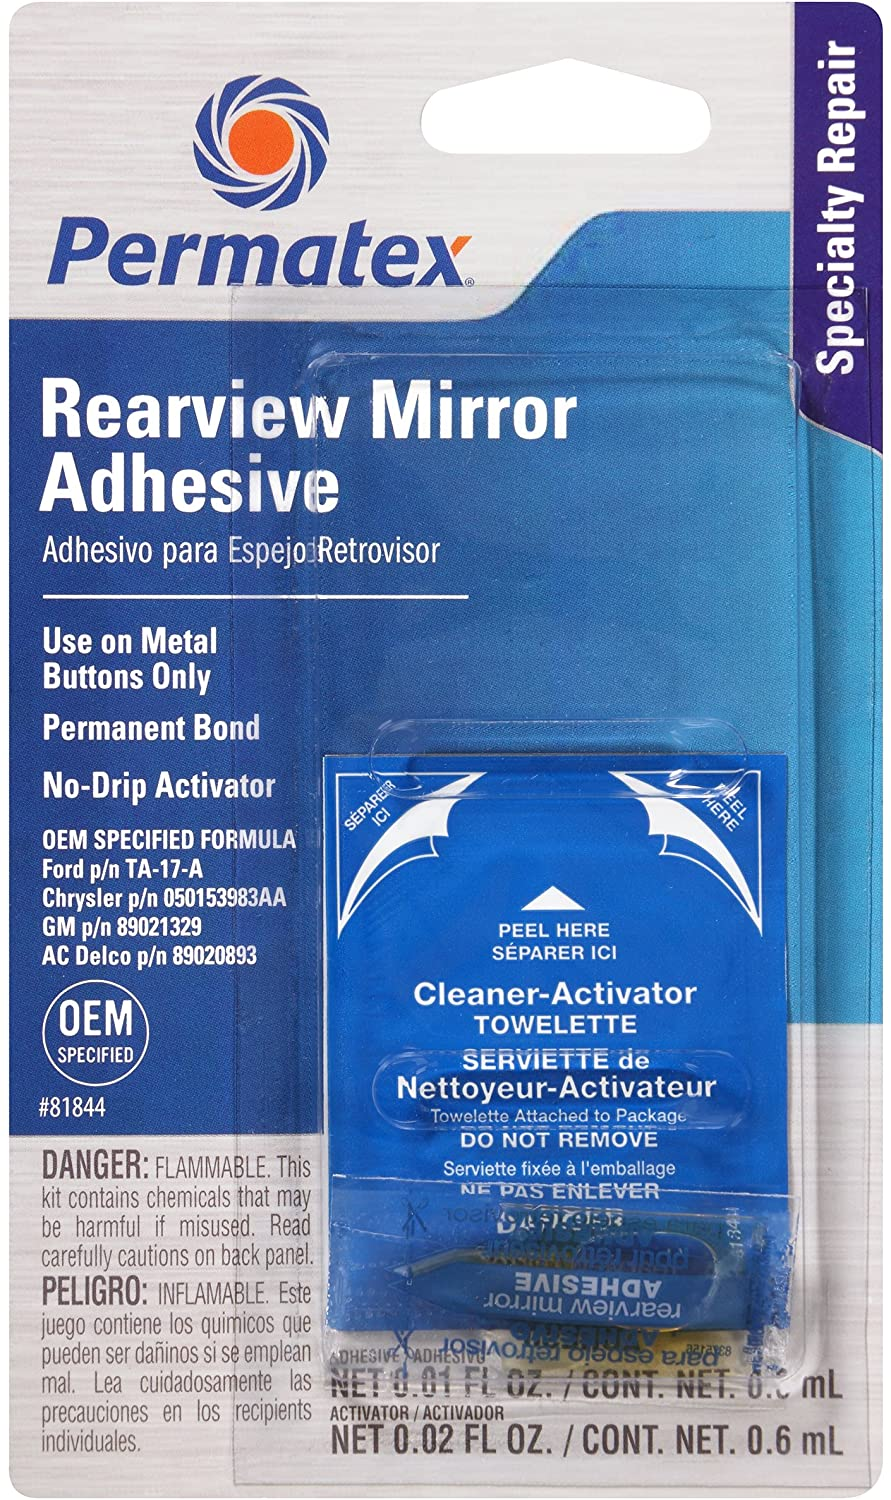 how to glue a Frameless Mirror to Drywall